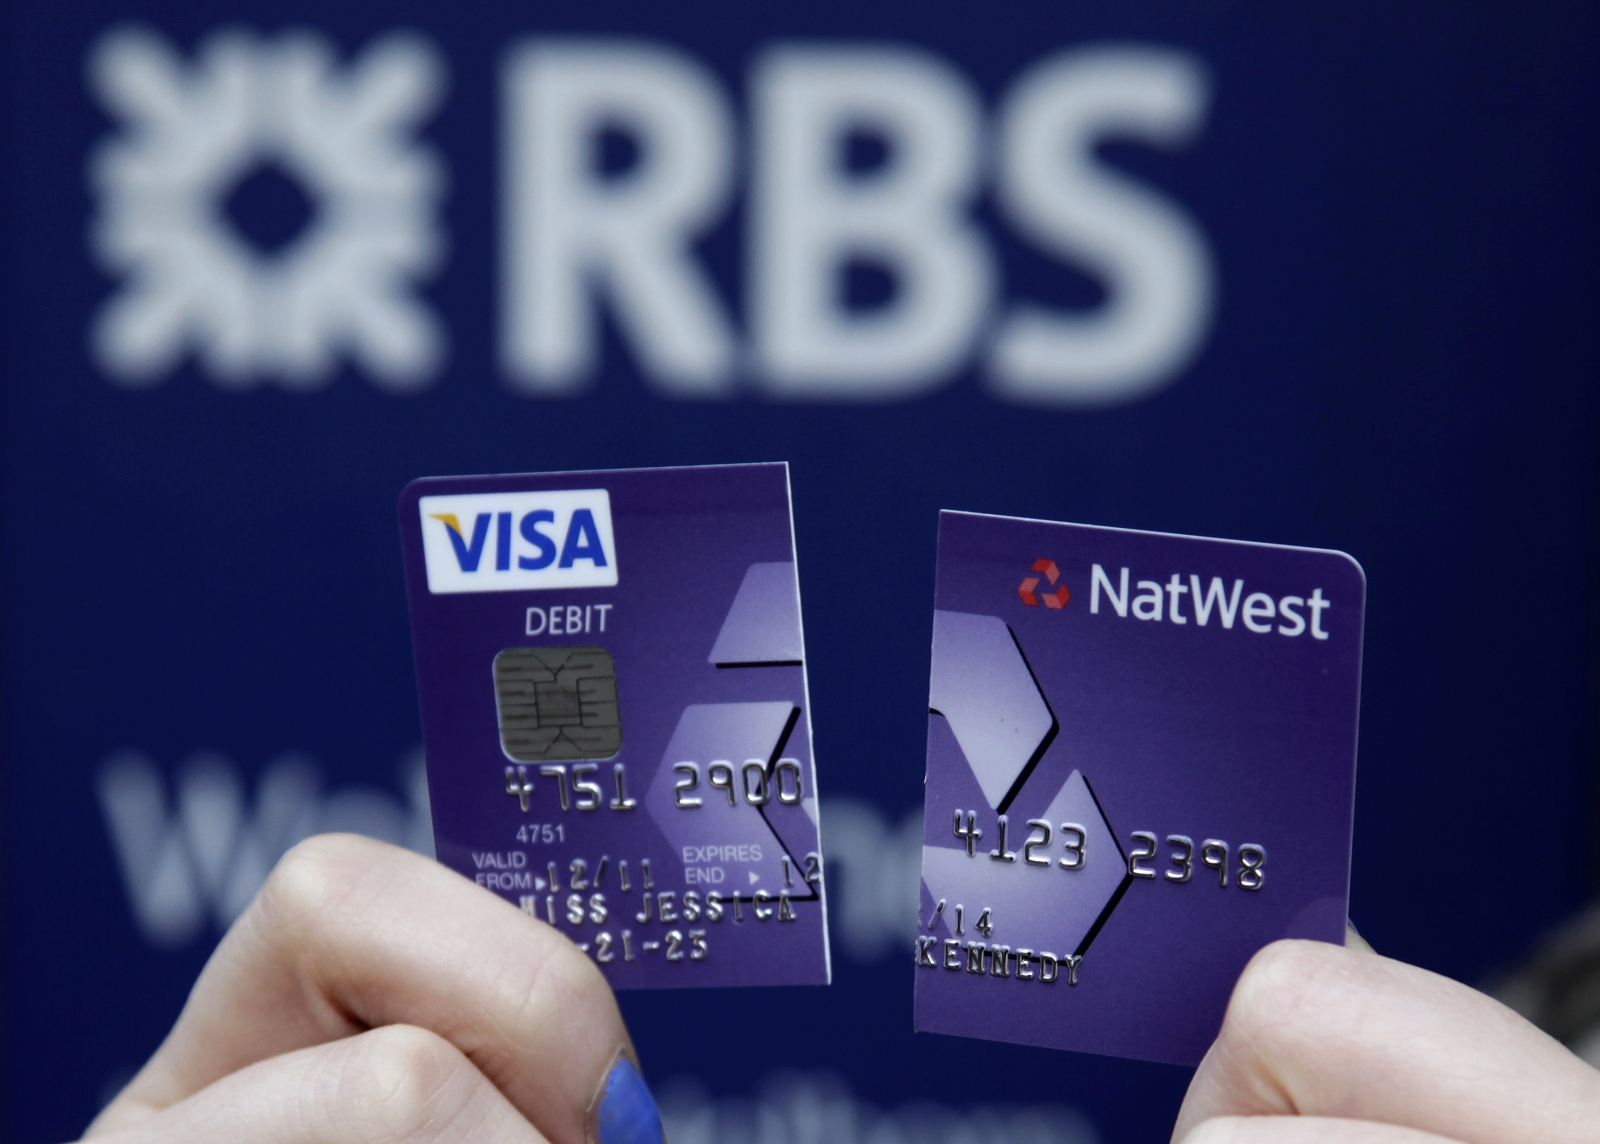 RBS and Natwest Fined £15m for Serious Failings in Mortgage Advice